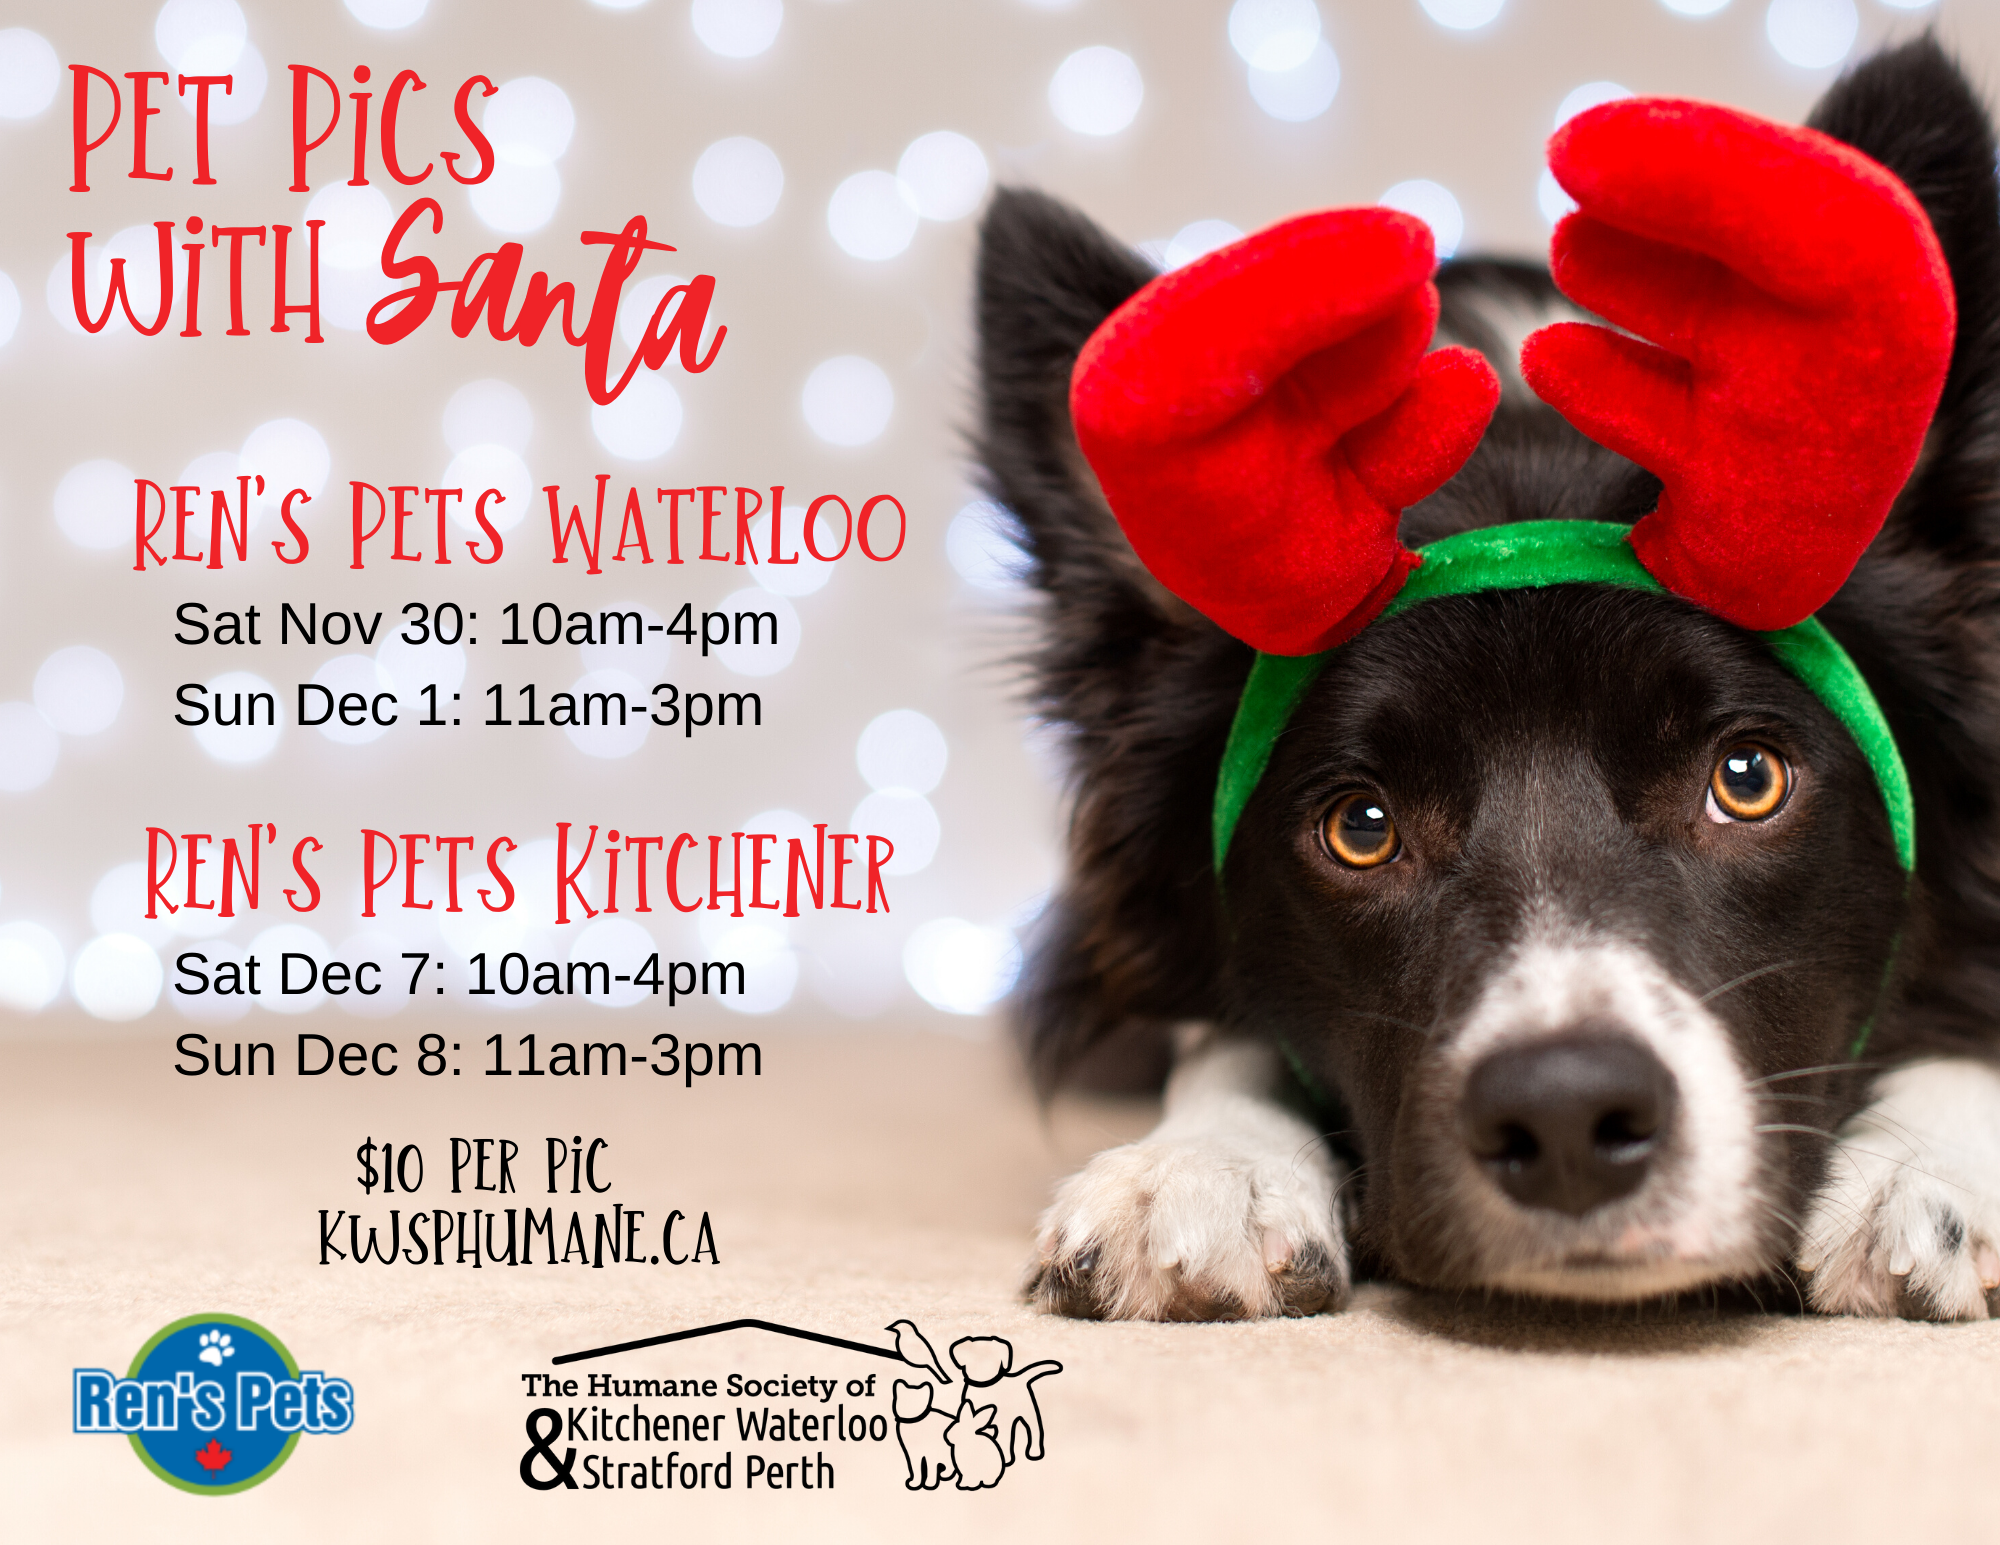 Pet Pics with Santa at Ren's Pets Kitchener